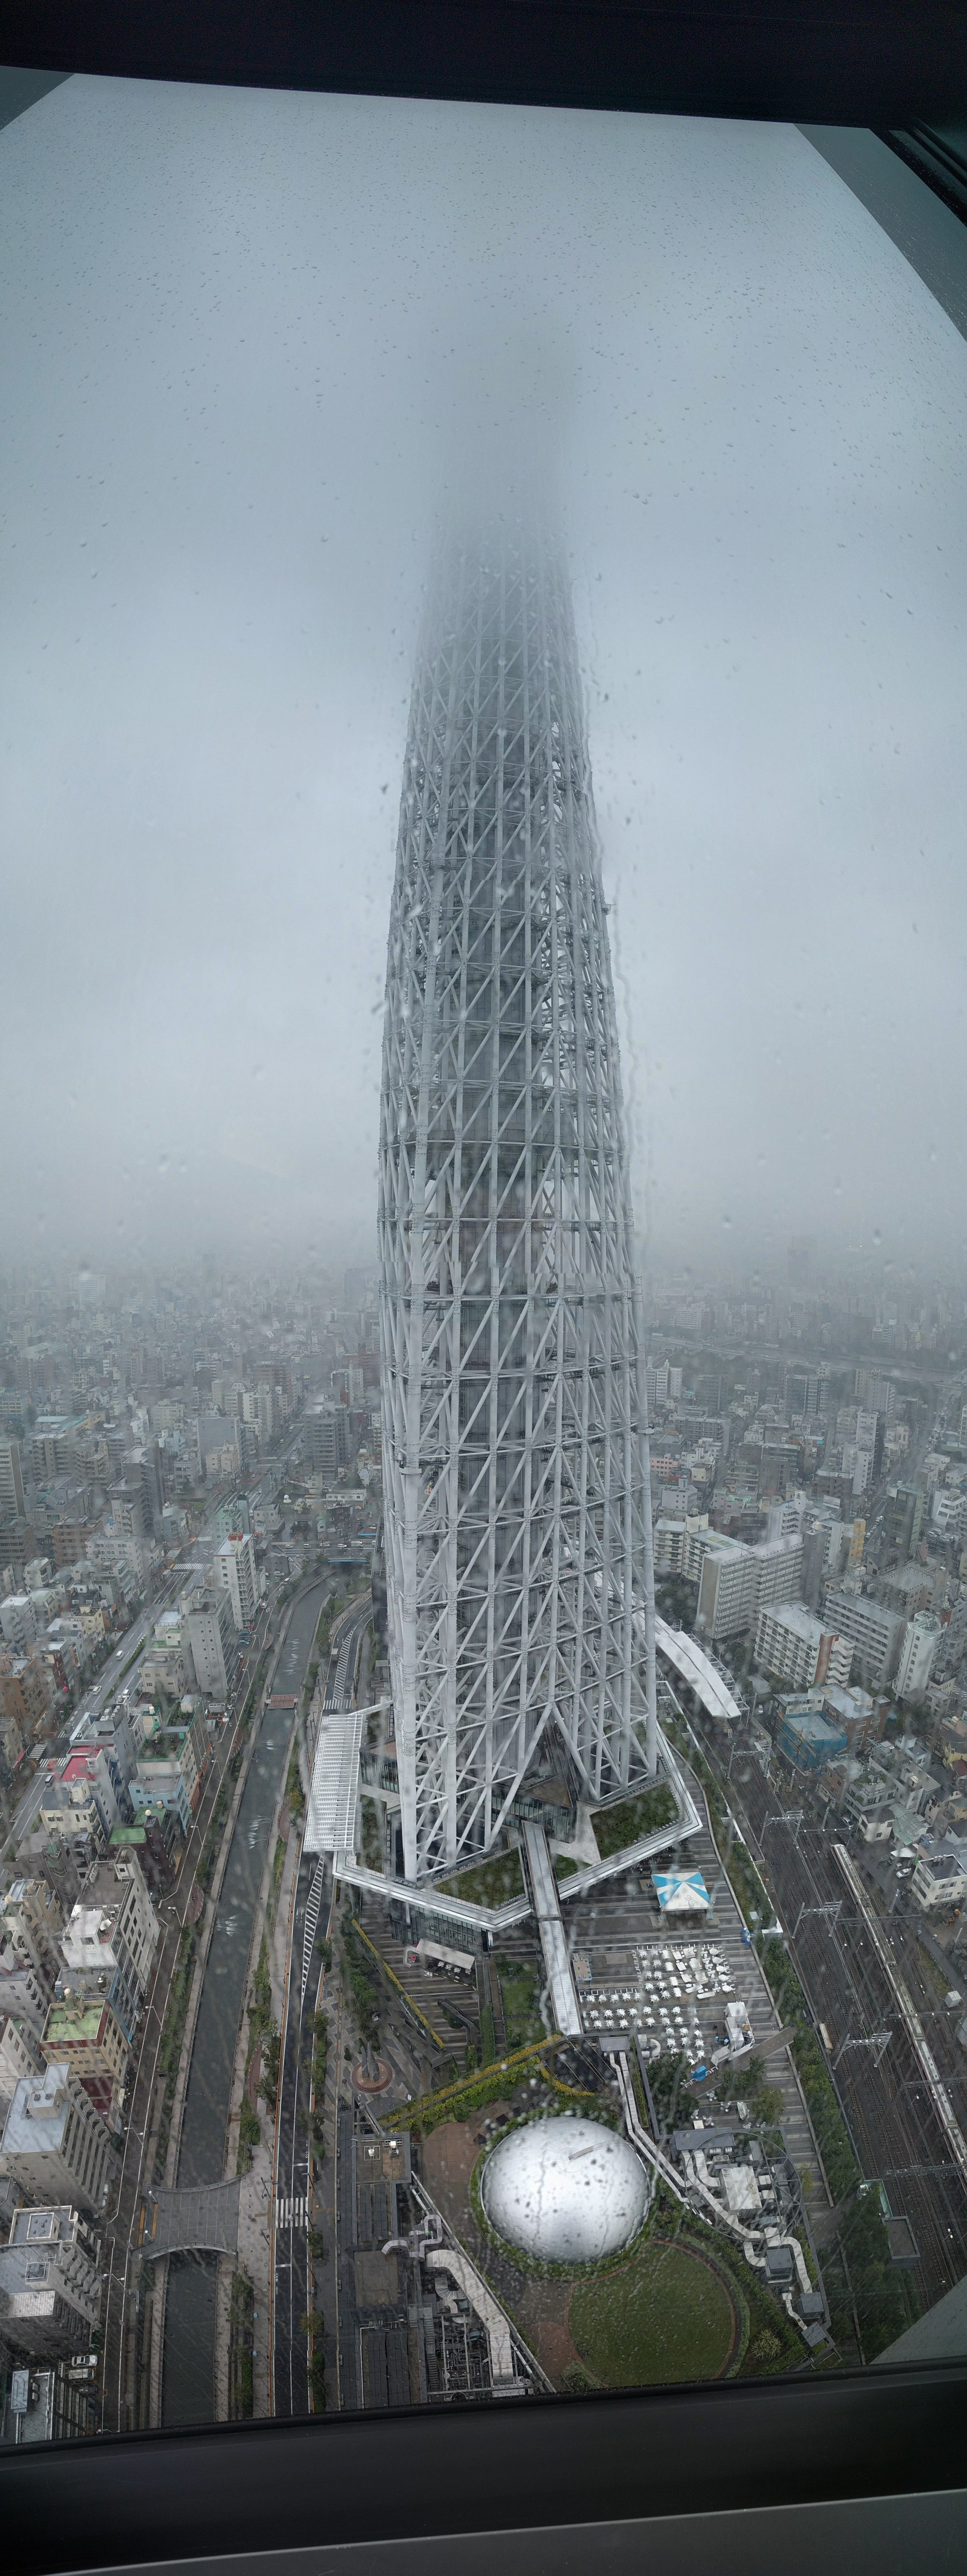 Cloudy day at SkyTree